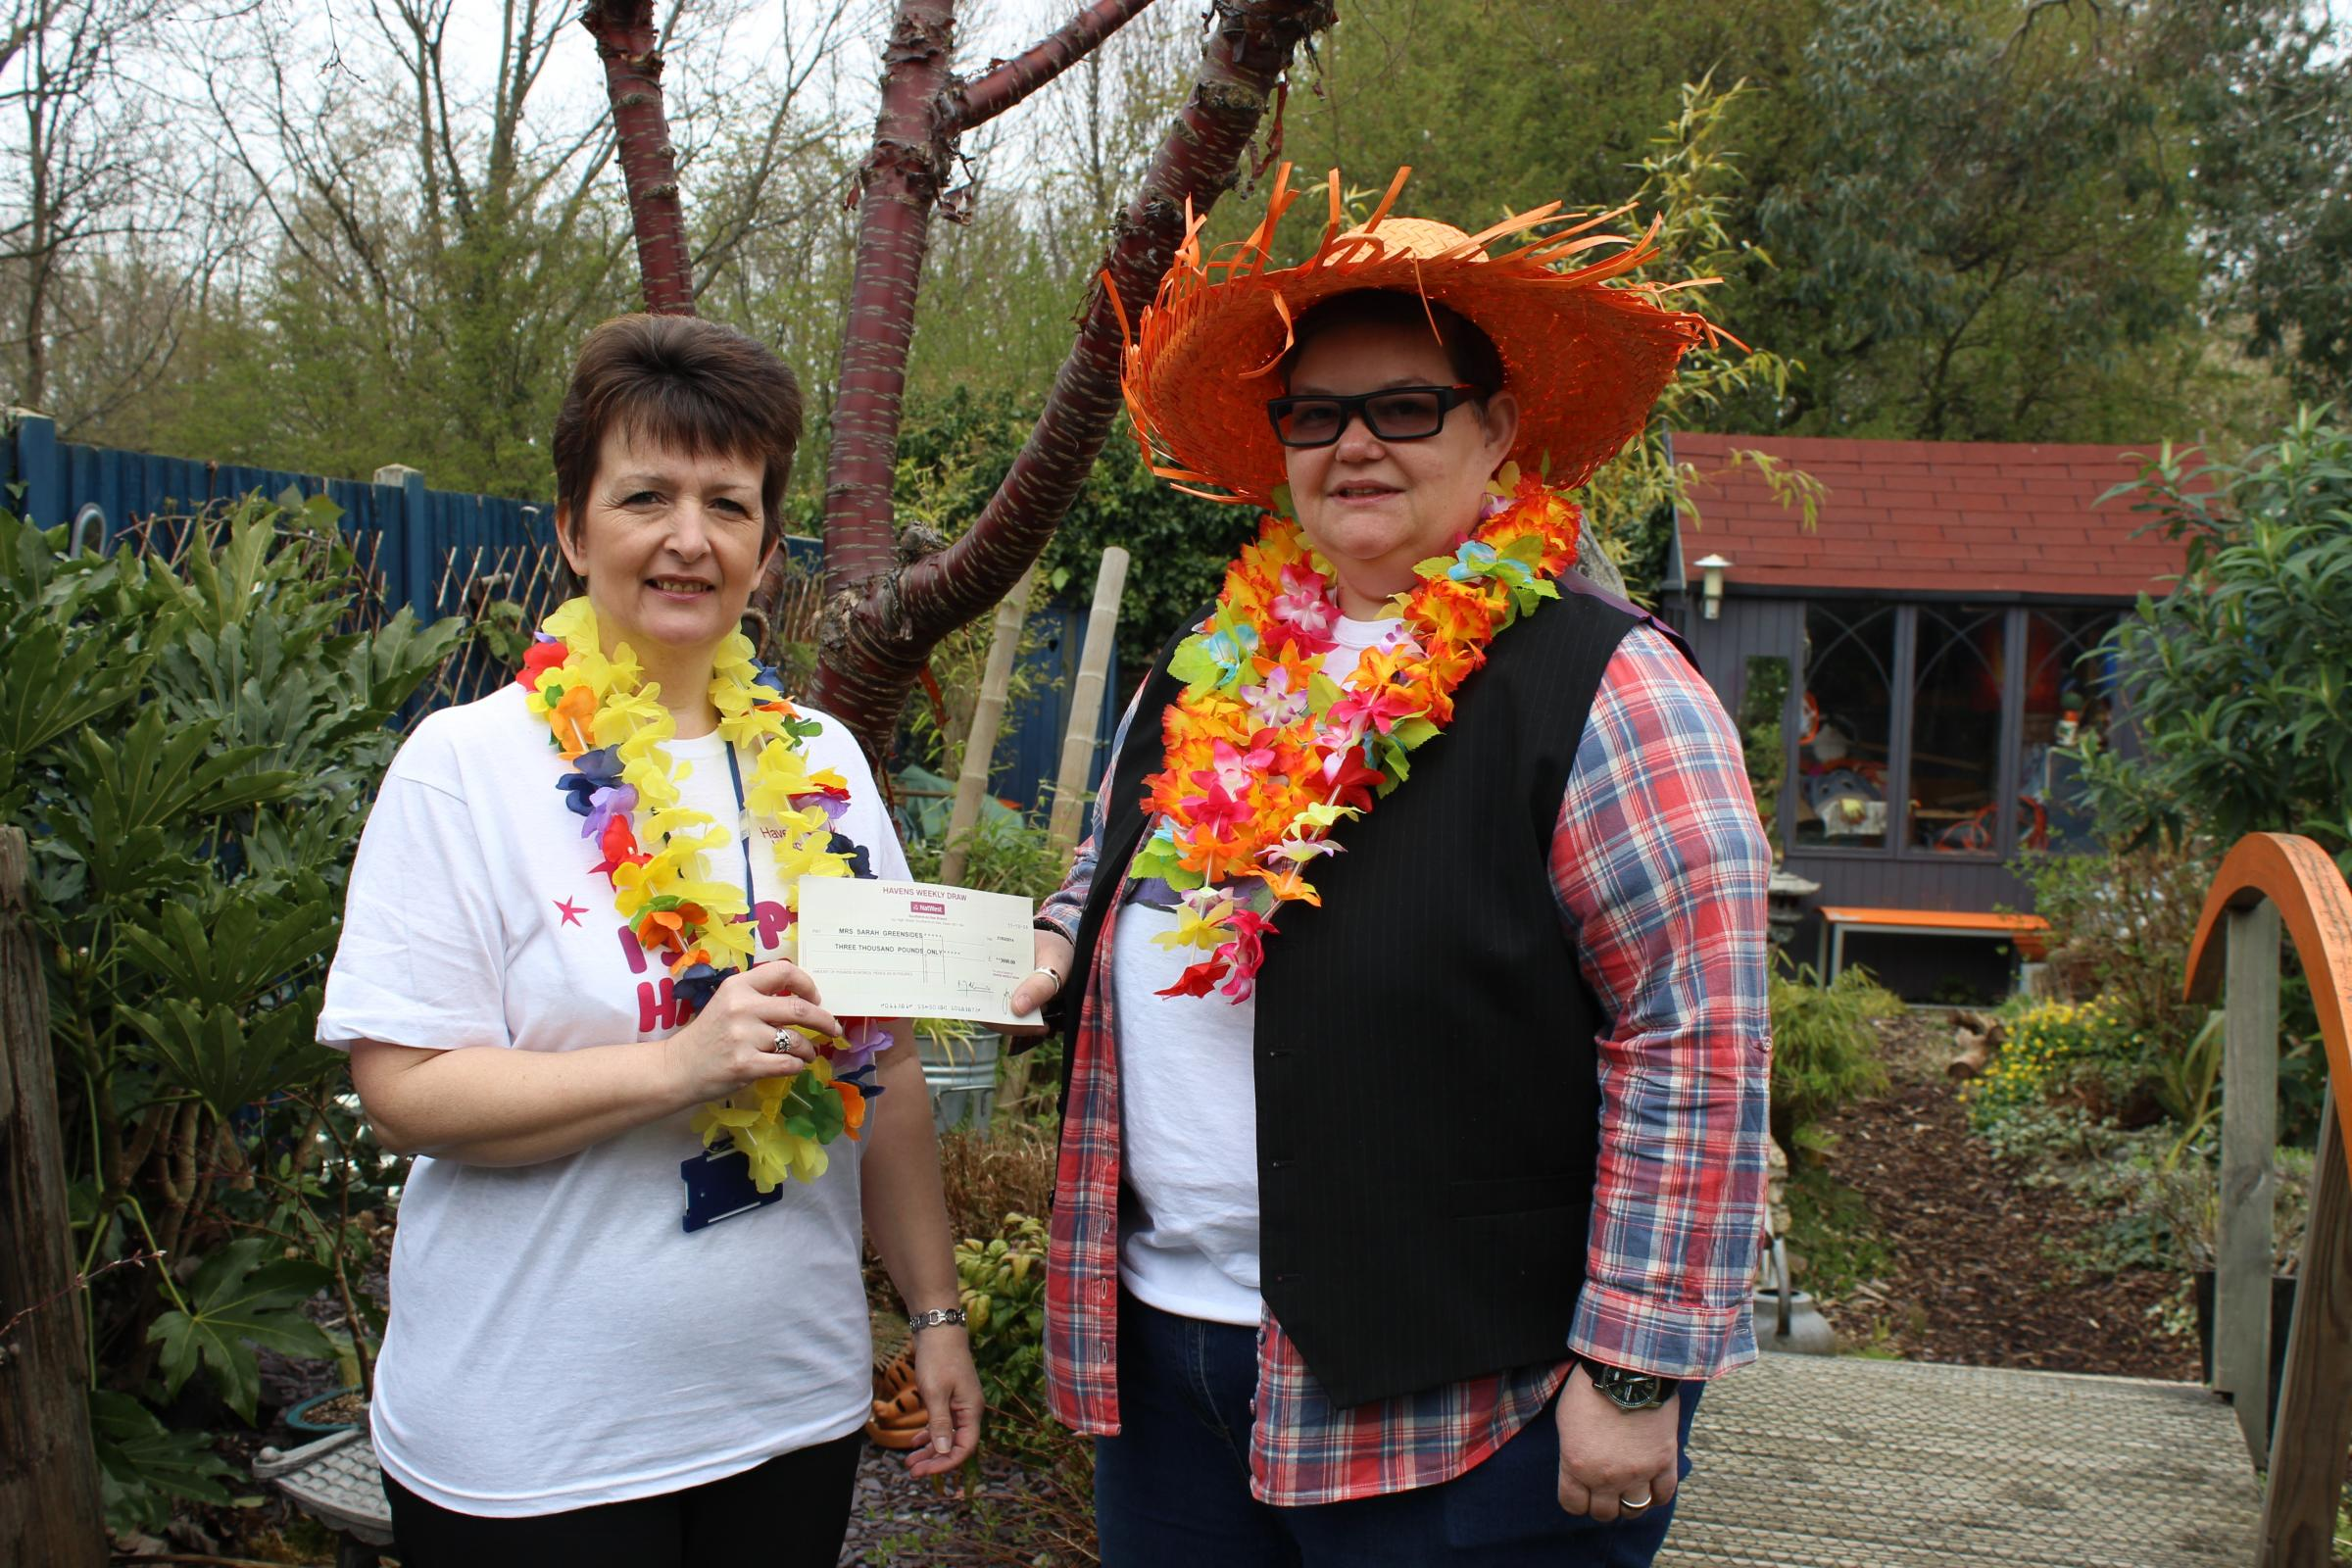 Winner – Sarah Greensides collects her cheque for £3.000 from Carmel Hudson